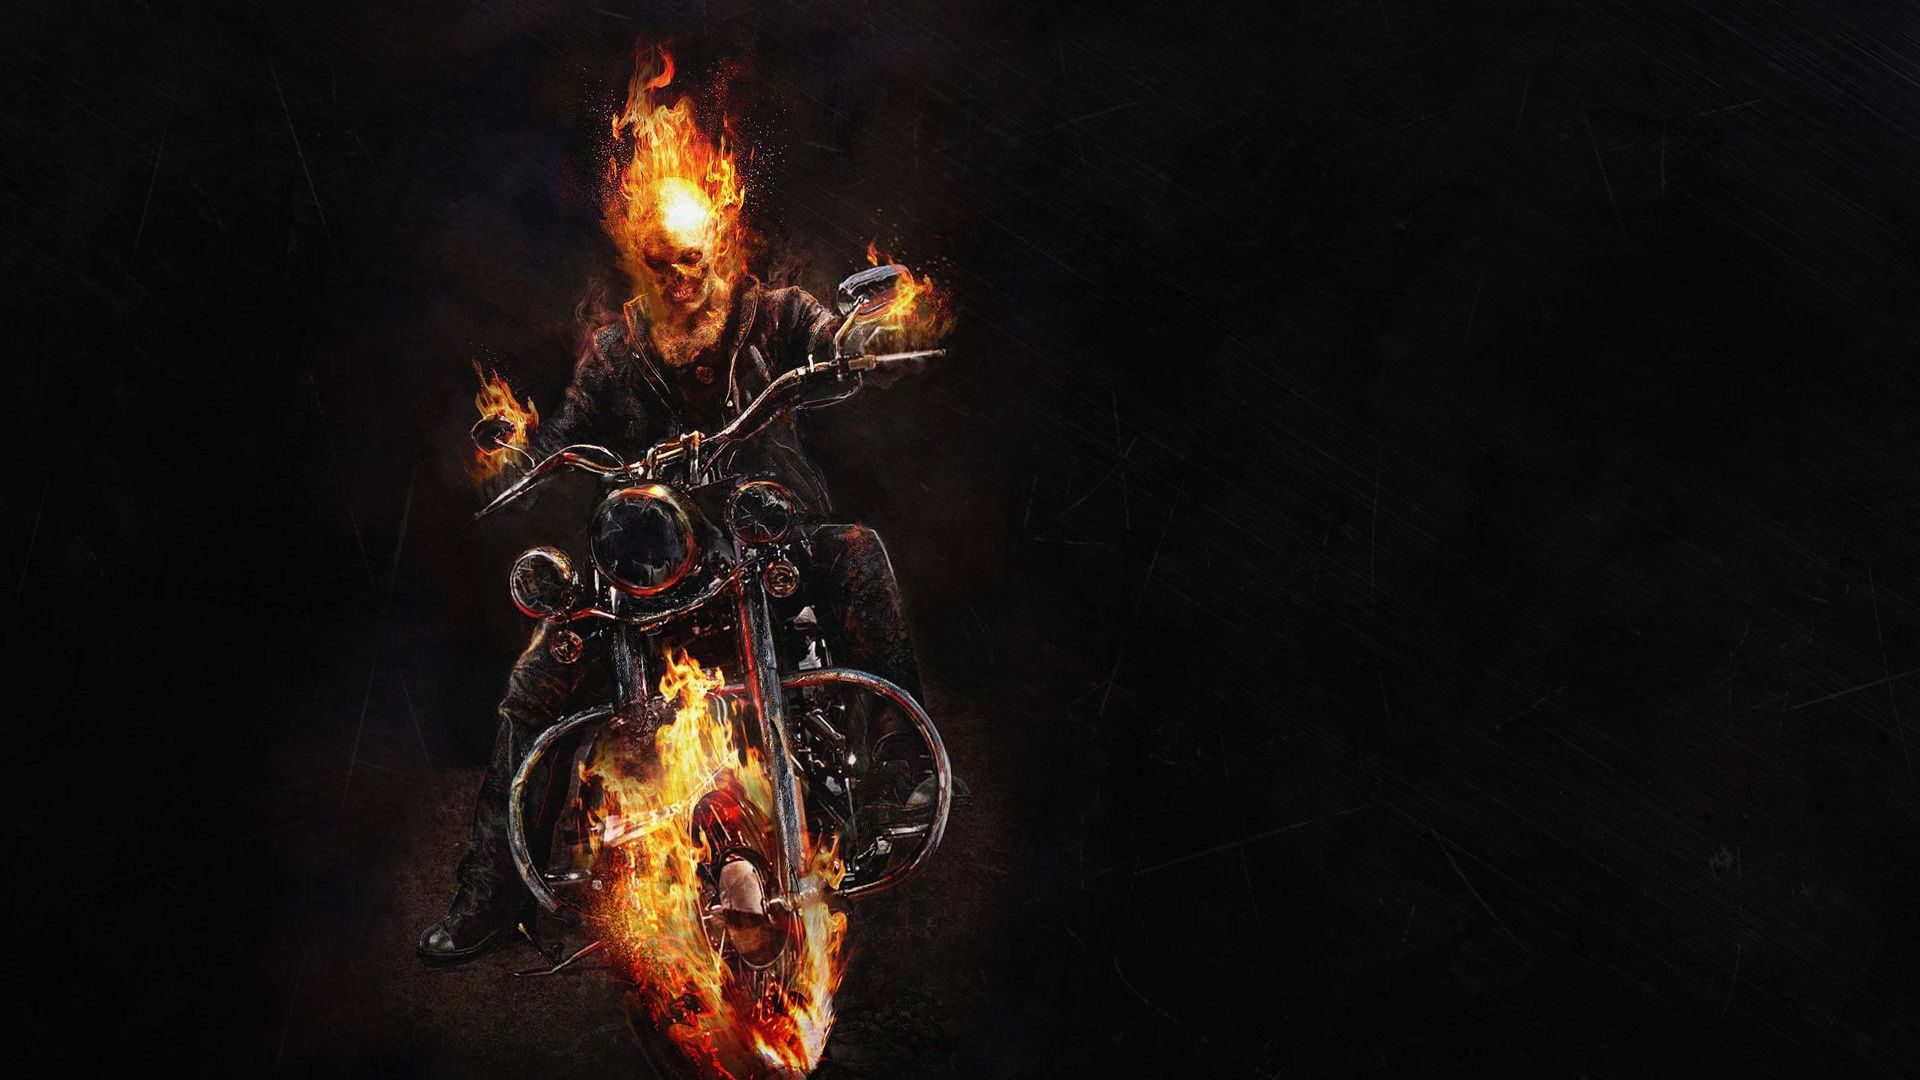 ghost rider wallpaper download wallpapers free ghost rider 1920x1080